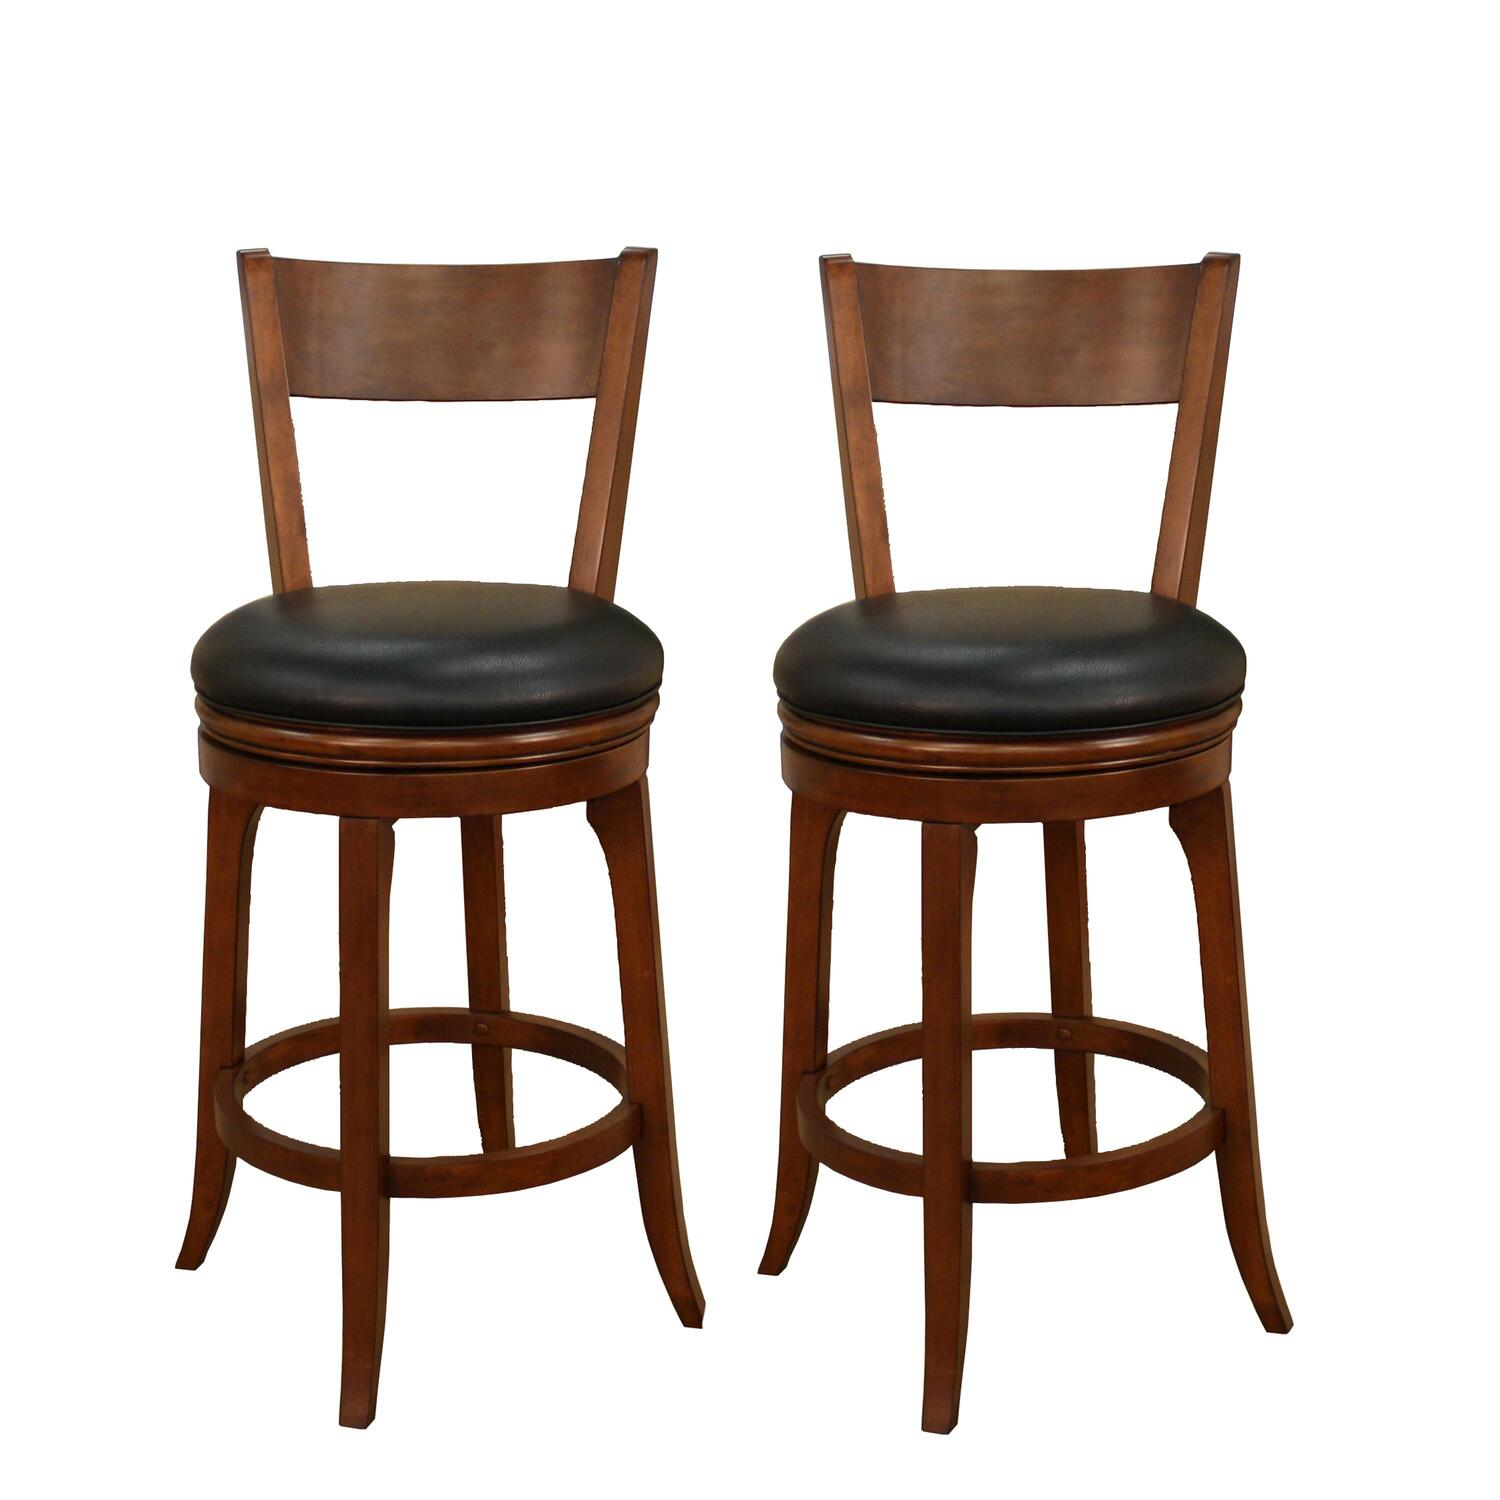 Superb img of  Heritage Billiards Autumn Bar Stool by OJ Commerce $458.21 $993.04 with #3F2214 color and 3000x3000 pixels